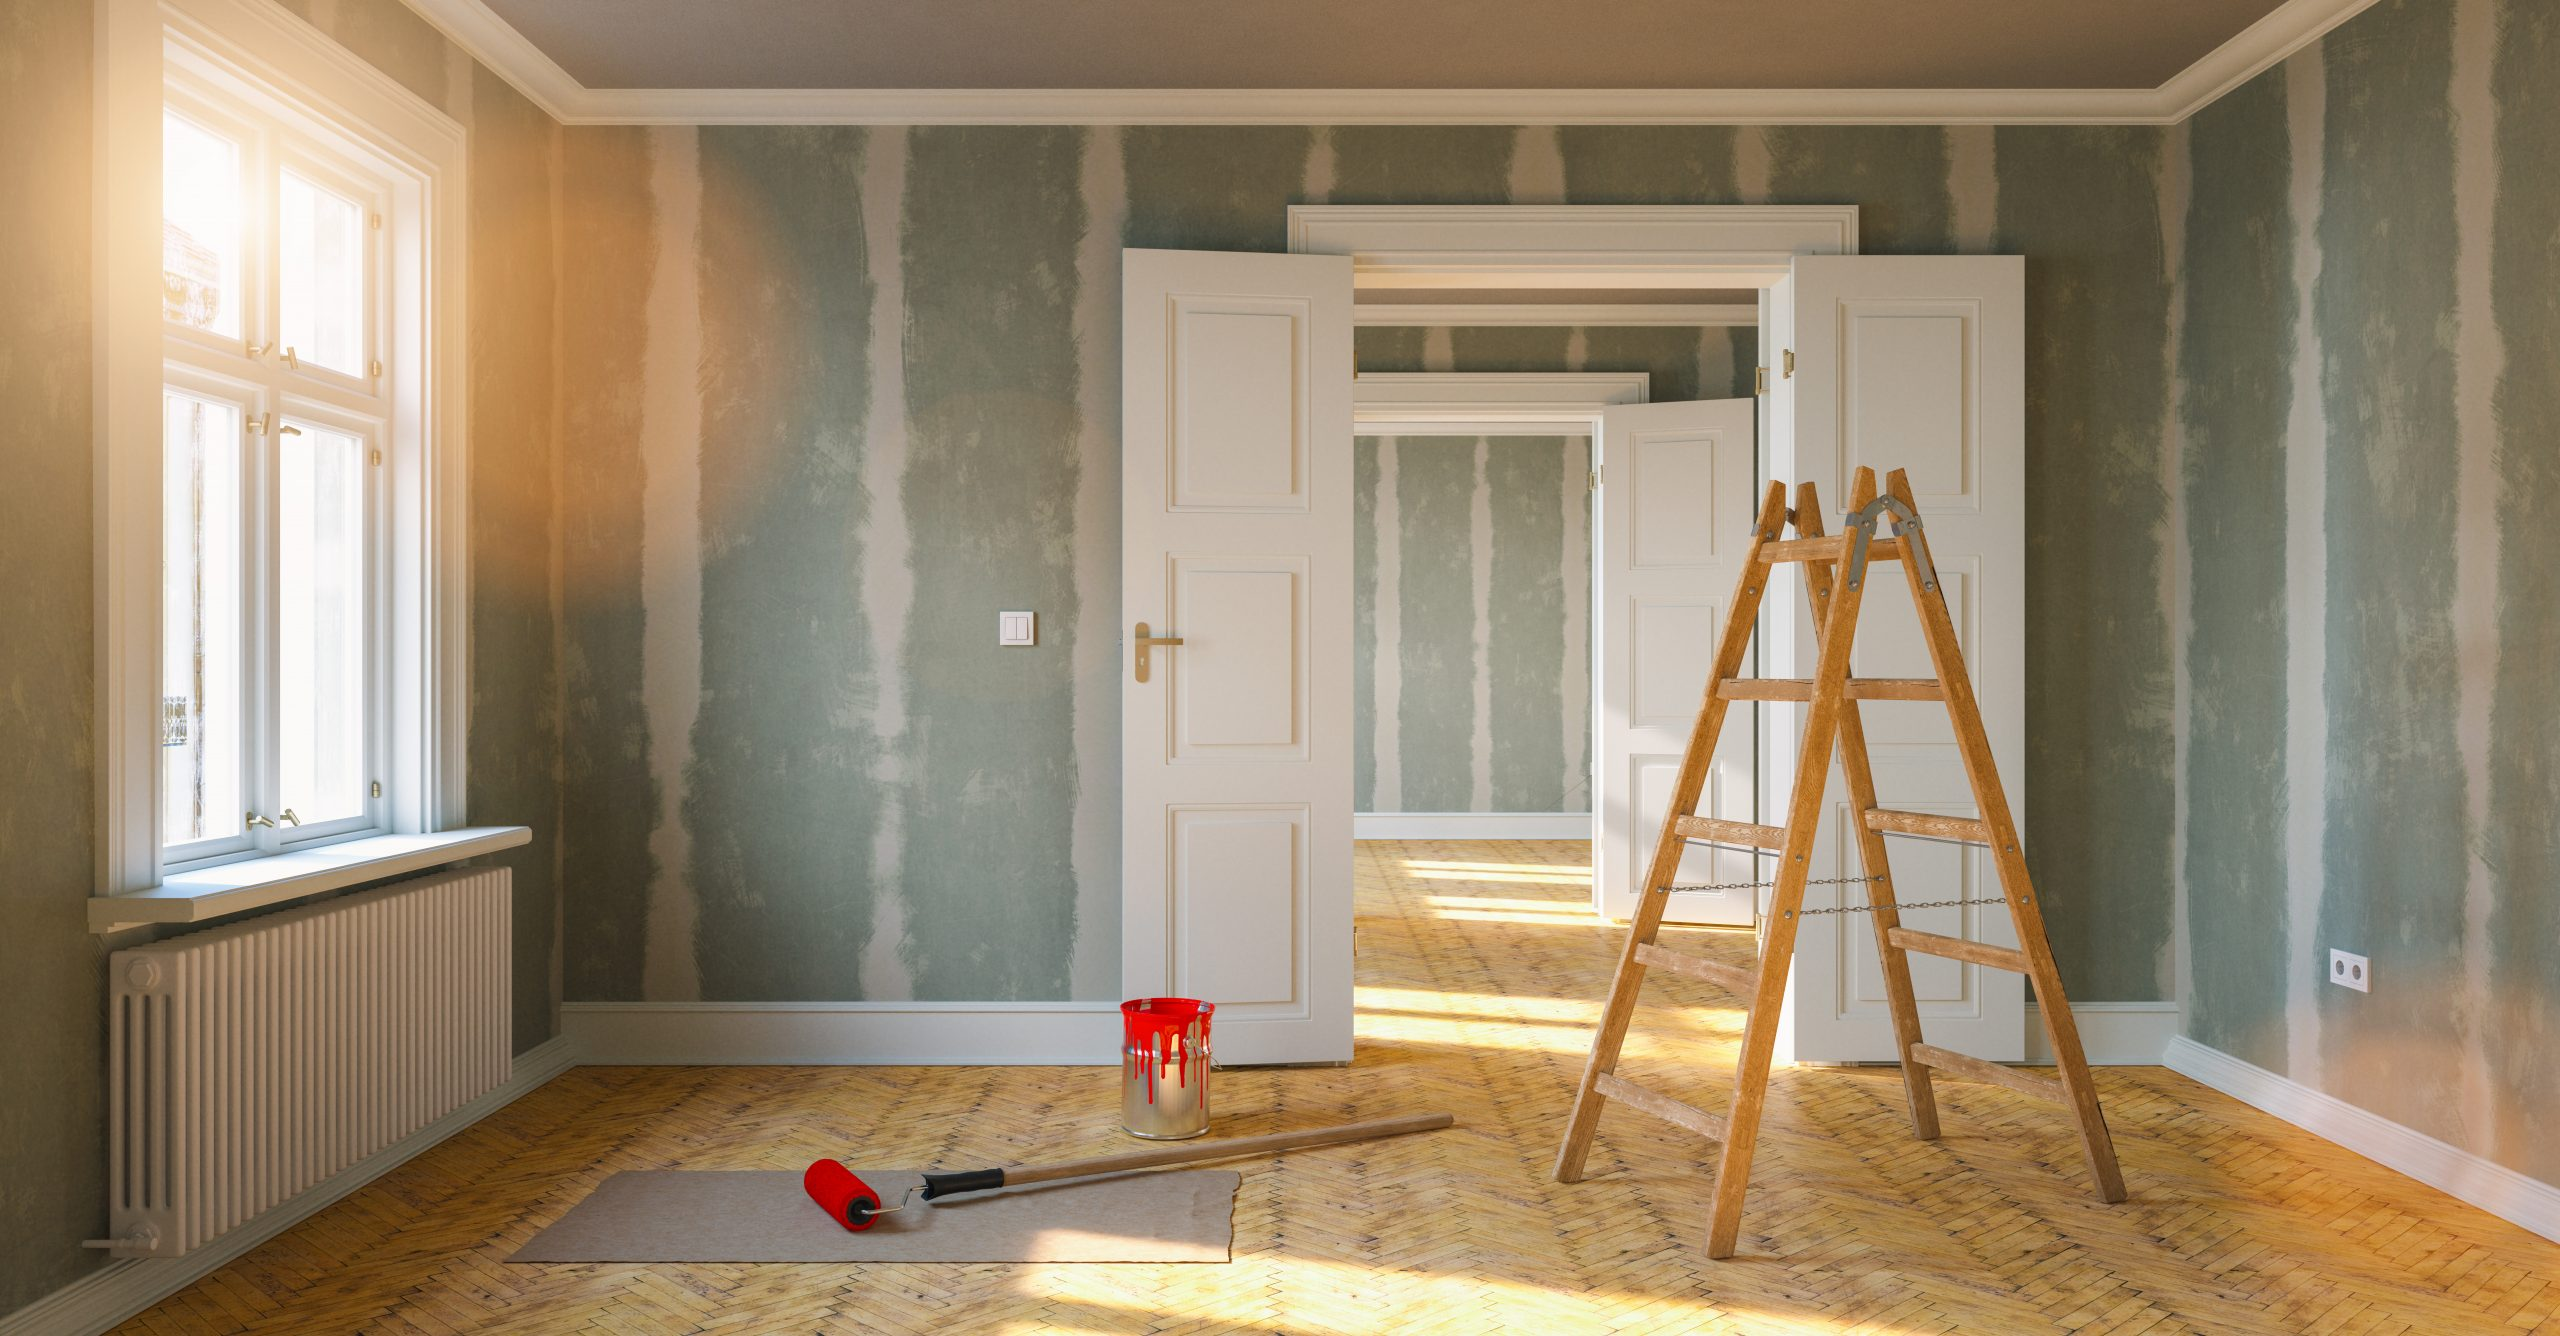 The Reasons Why We Love Home Renovations